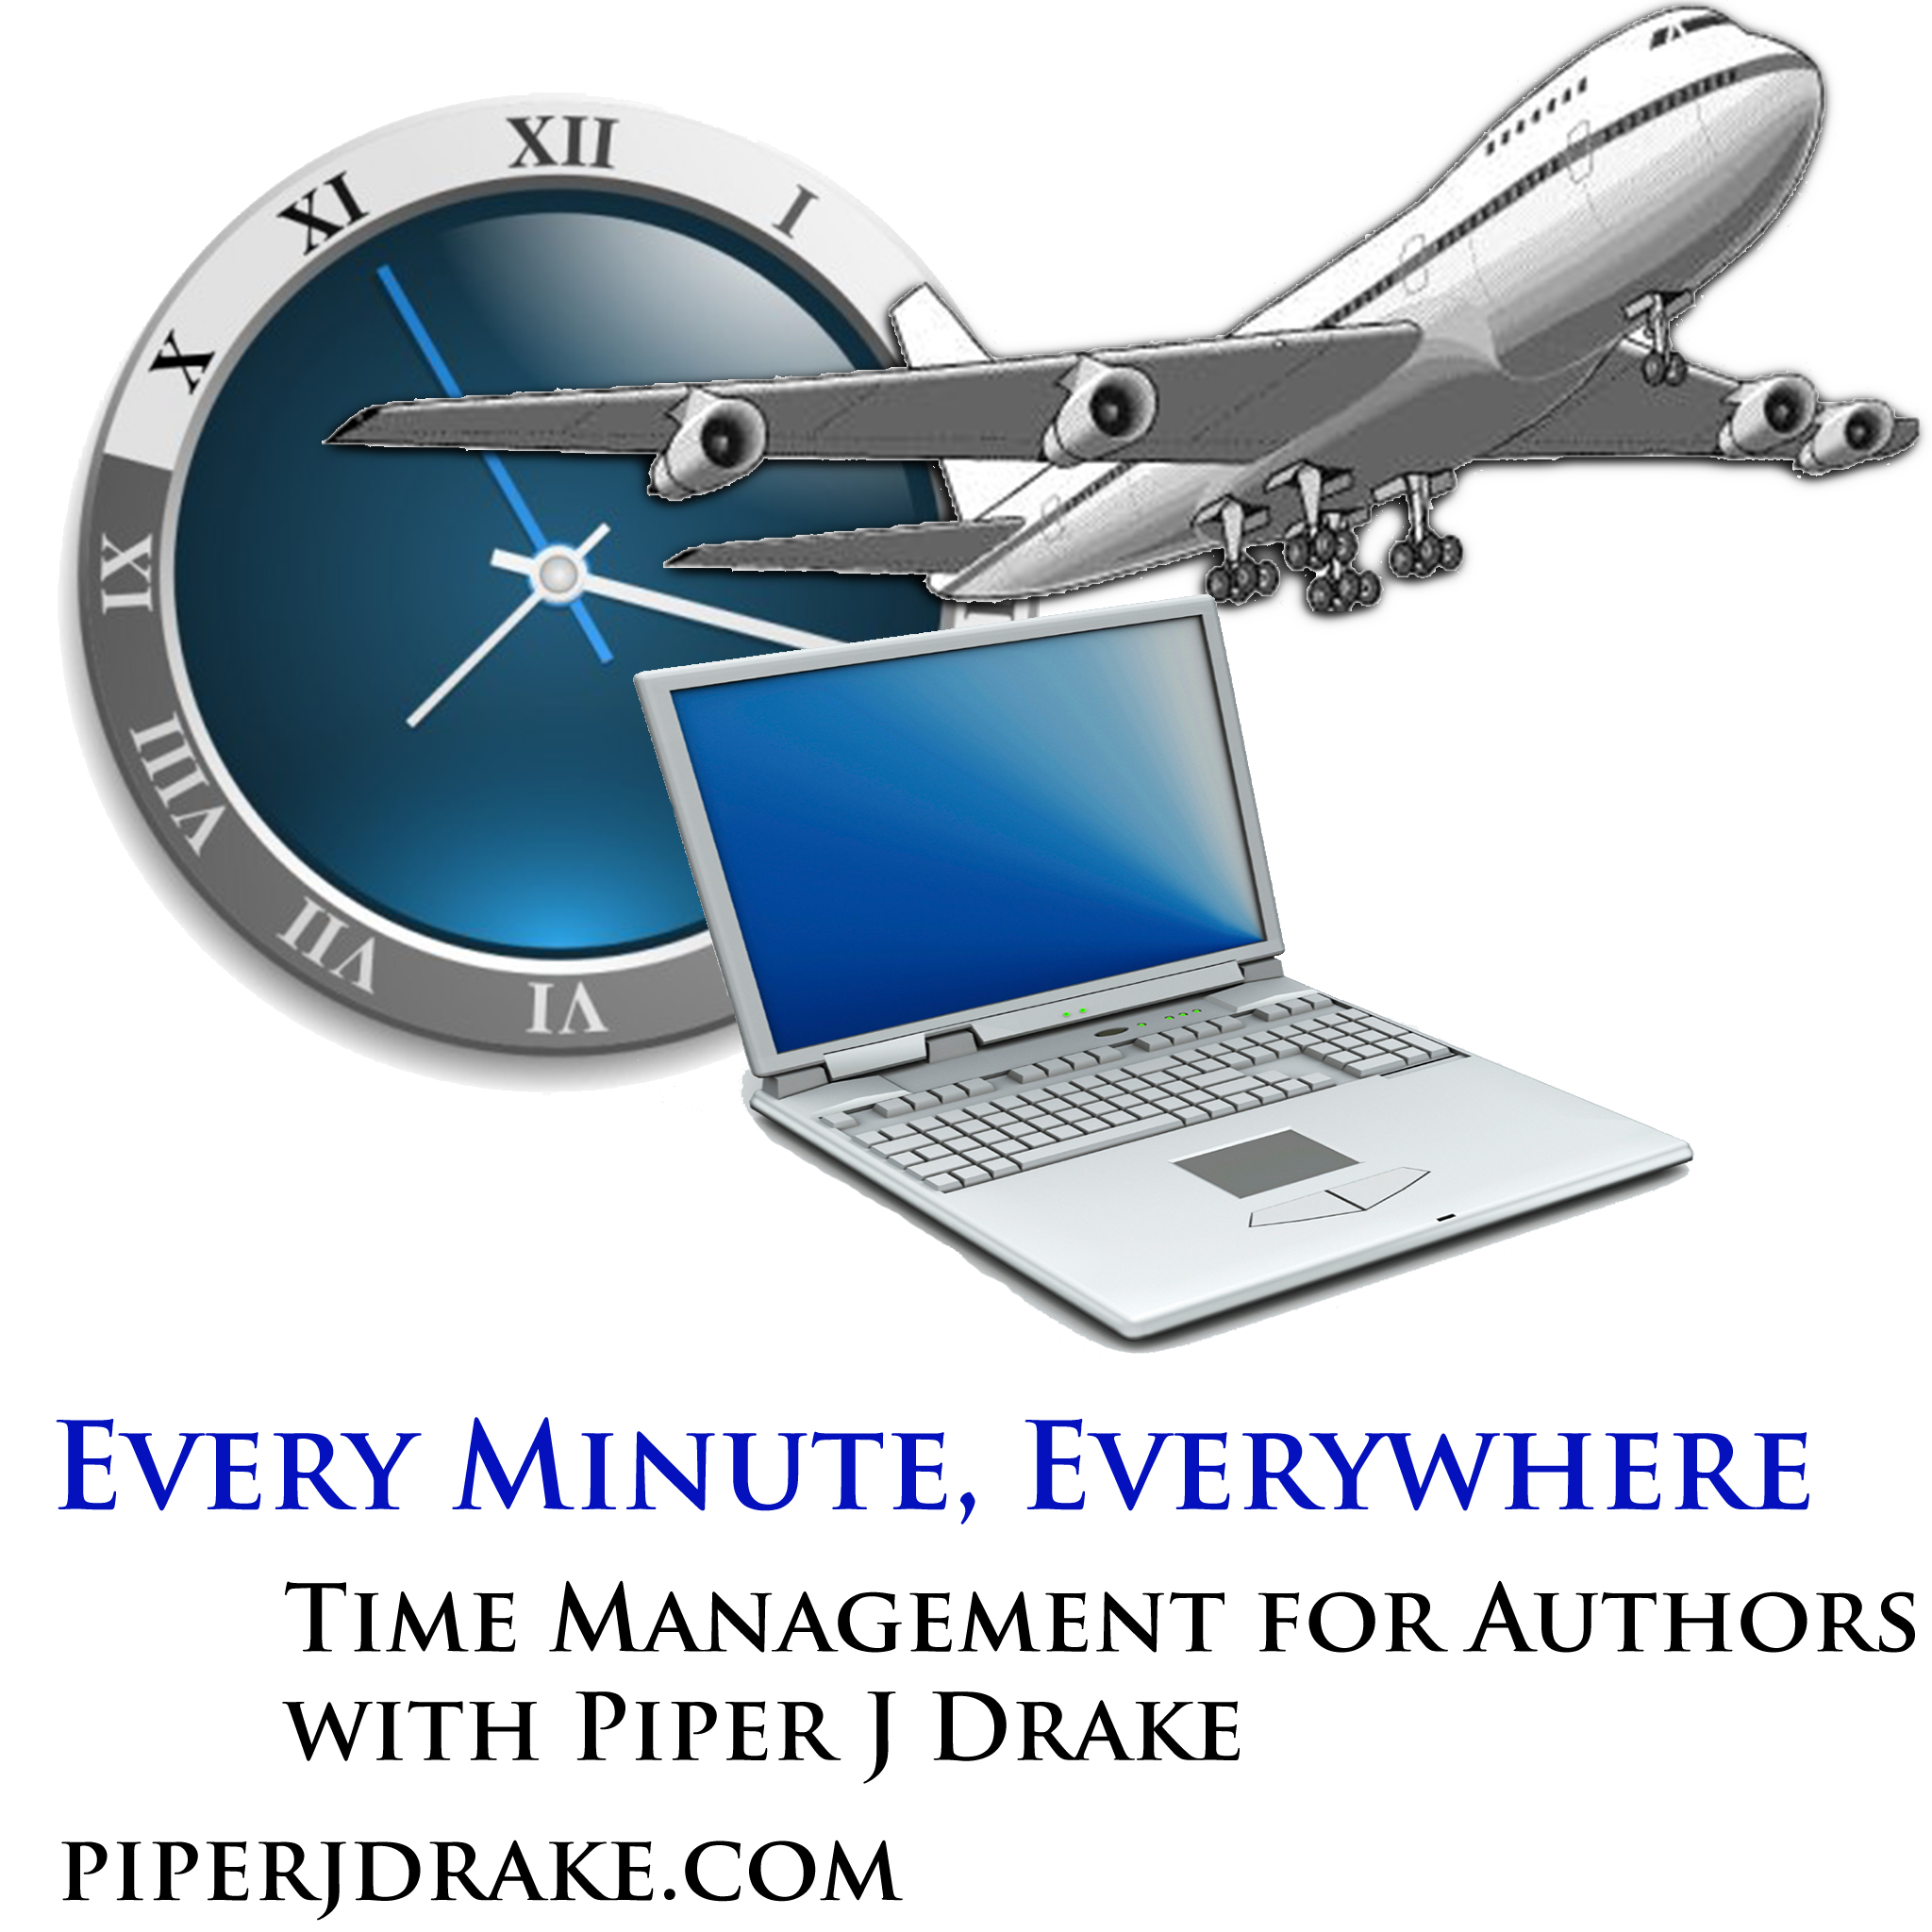 Every Minute, Everywhere - Time Management for Authors with Piper J. Drake show art